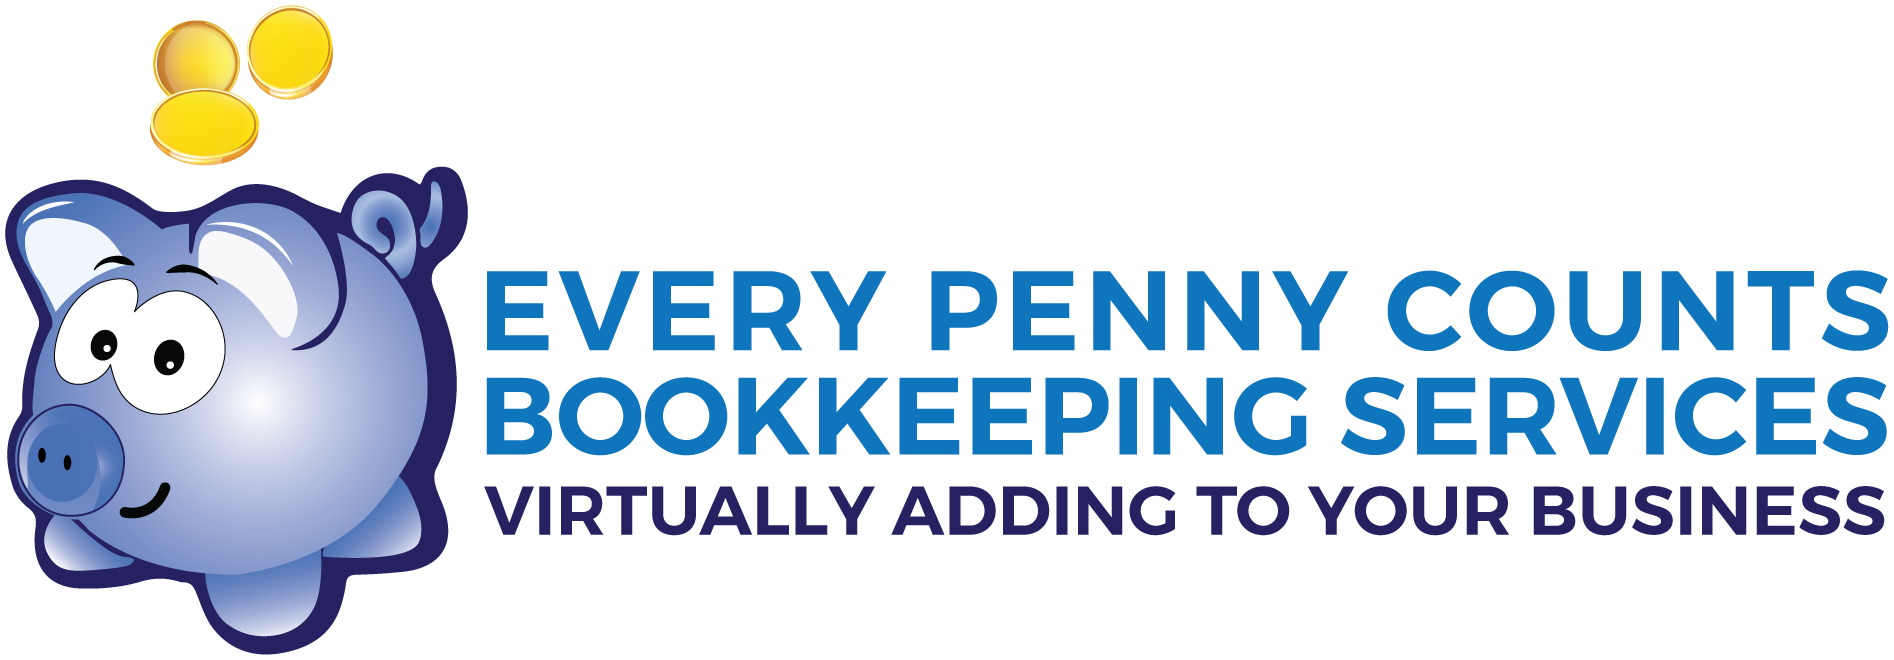 Henderson, NV Bookkeeping Firm | Resources Page | Every Penny Counts Bookkeeping Services